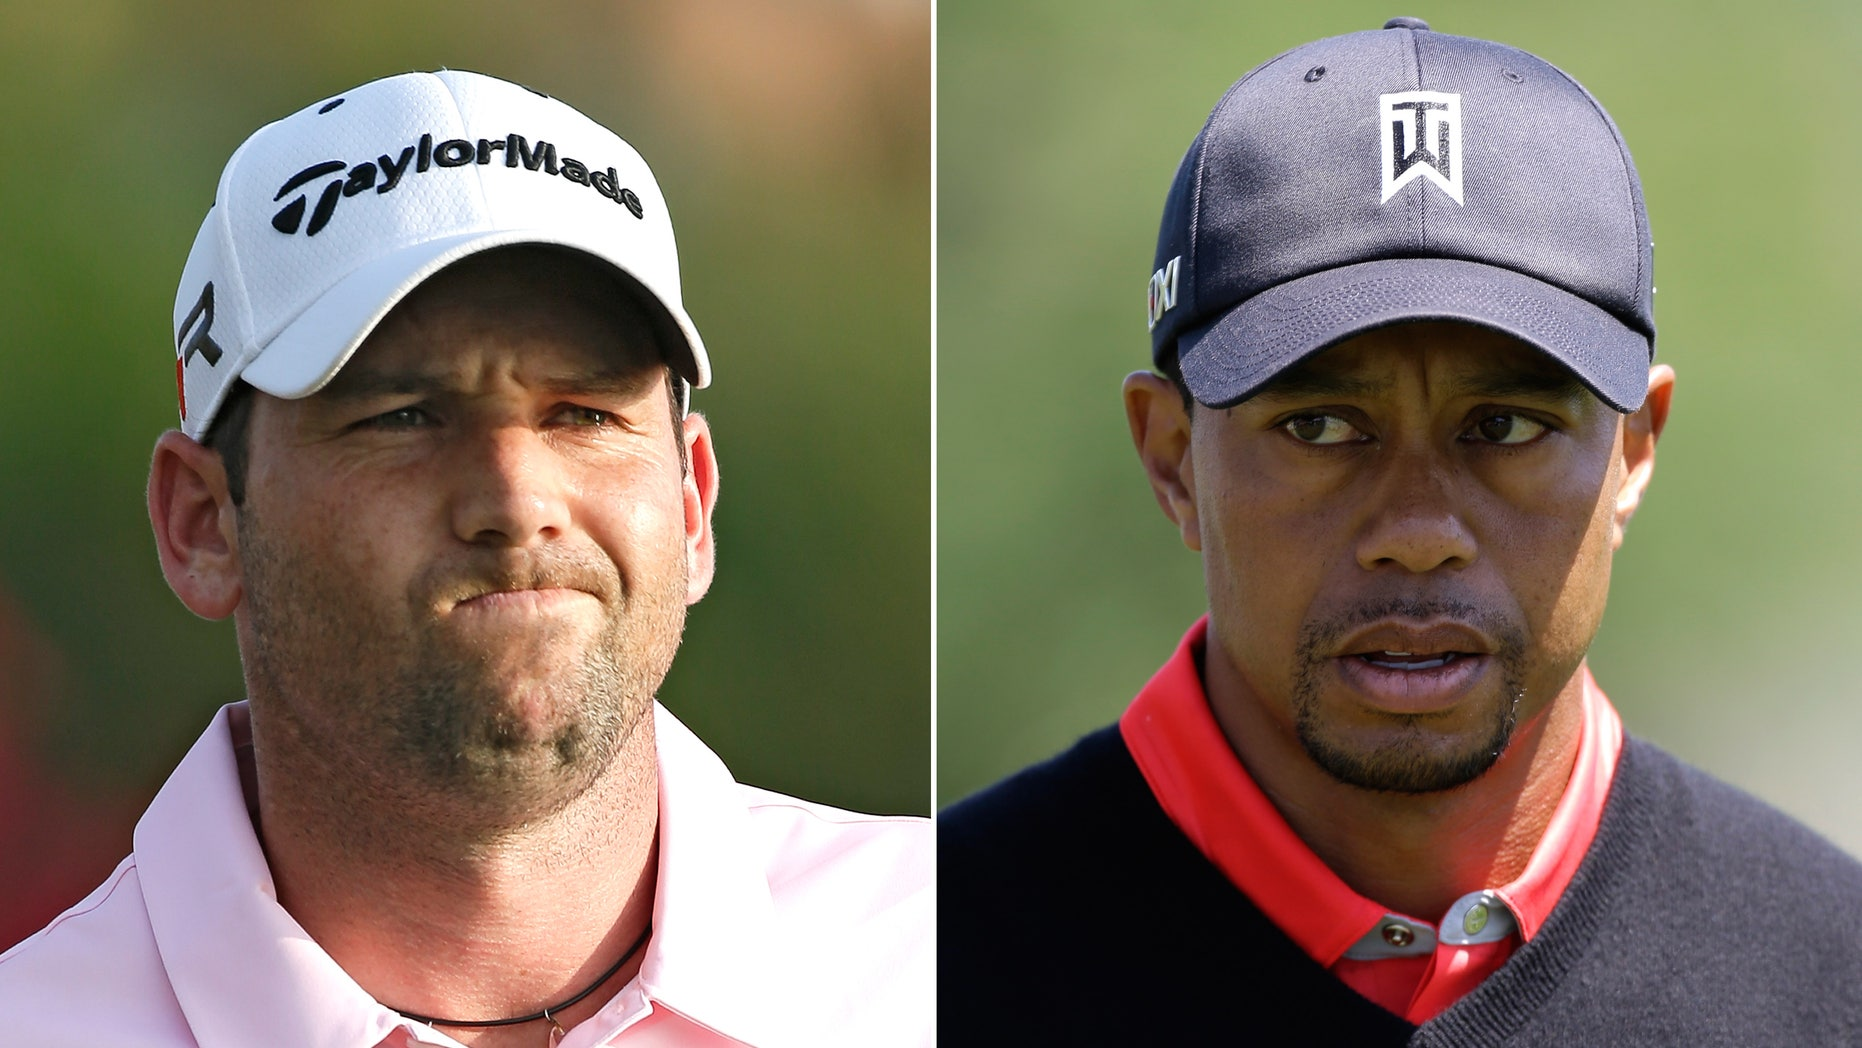 FILE - At left, in a May 5, 2013 file photo, Sergio Garcia grimaces during The Players Championshop golf tournament in Ponte Vedra Beach, Fla. At right, in a March 25, 2013 file photo, Tiger Woods walks to the 16th green during the final round of the Arnold Palmer Invitational golf tournament in Orlando, Fla. Woods and Garcia don't like each other, and are making no attempt to disguise their feelings.  (AP Photo/File)